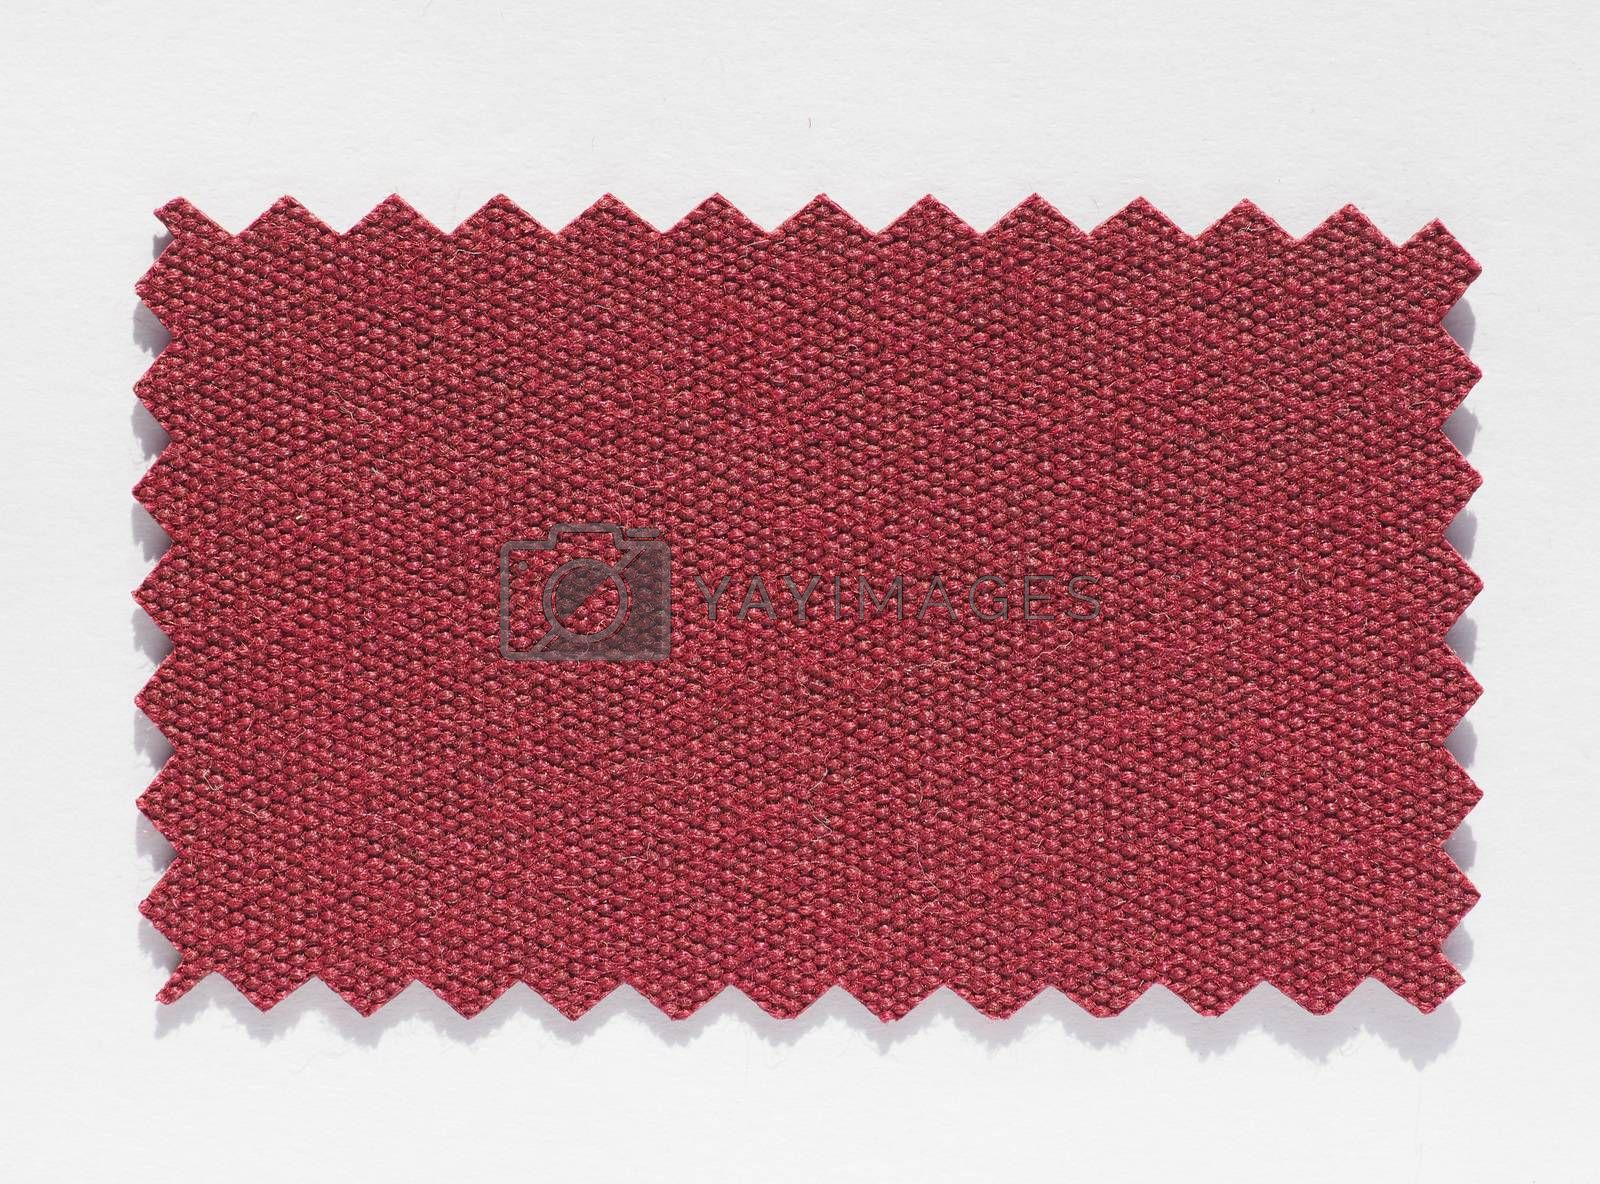 Royalty free image of Fabric swatch by claudiodivizia